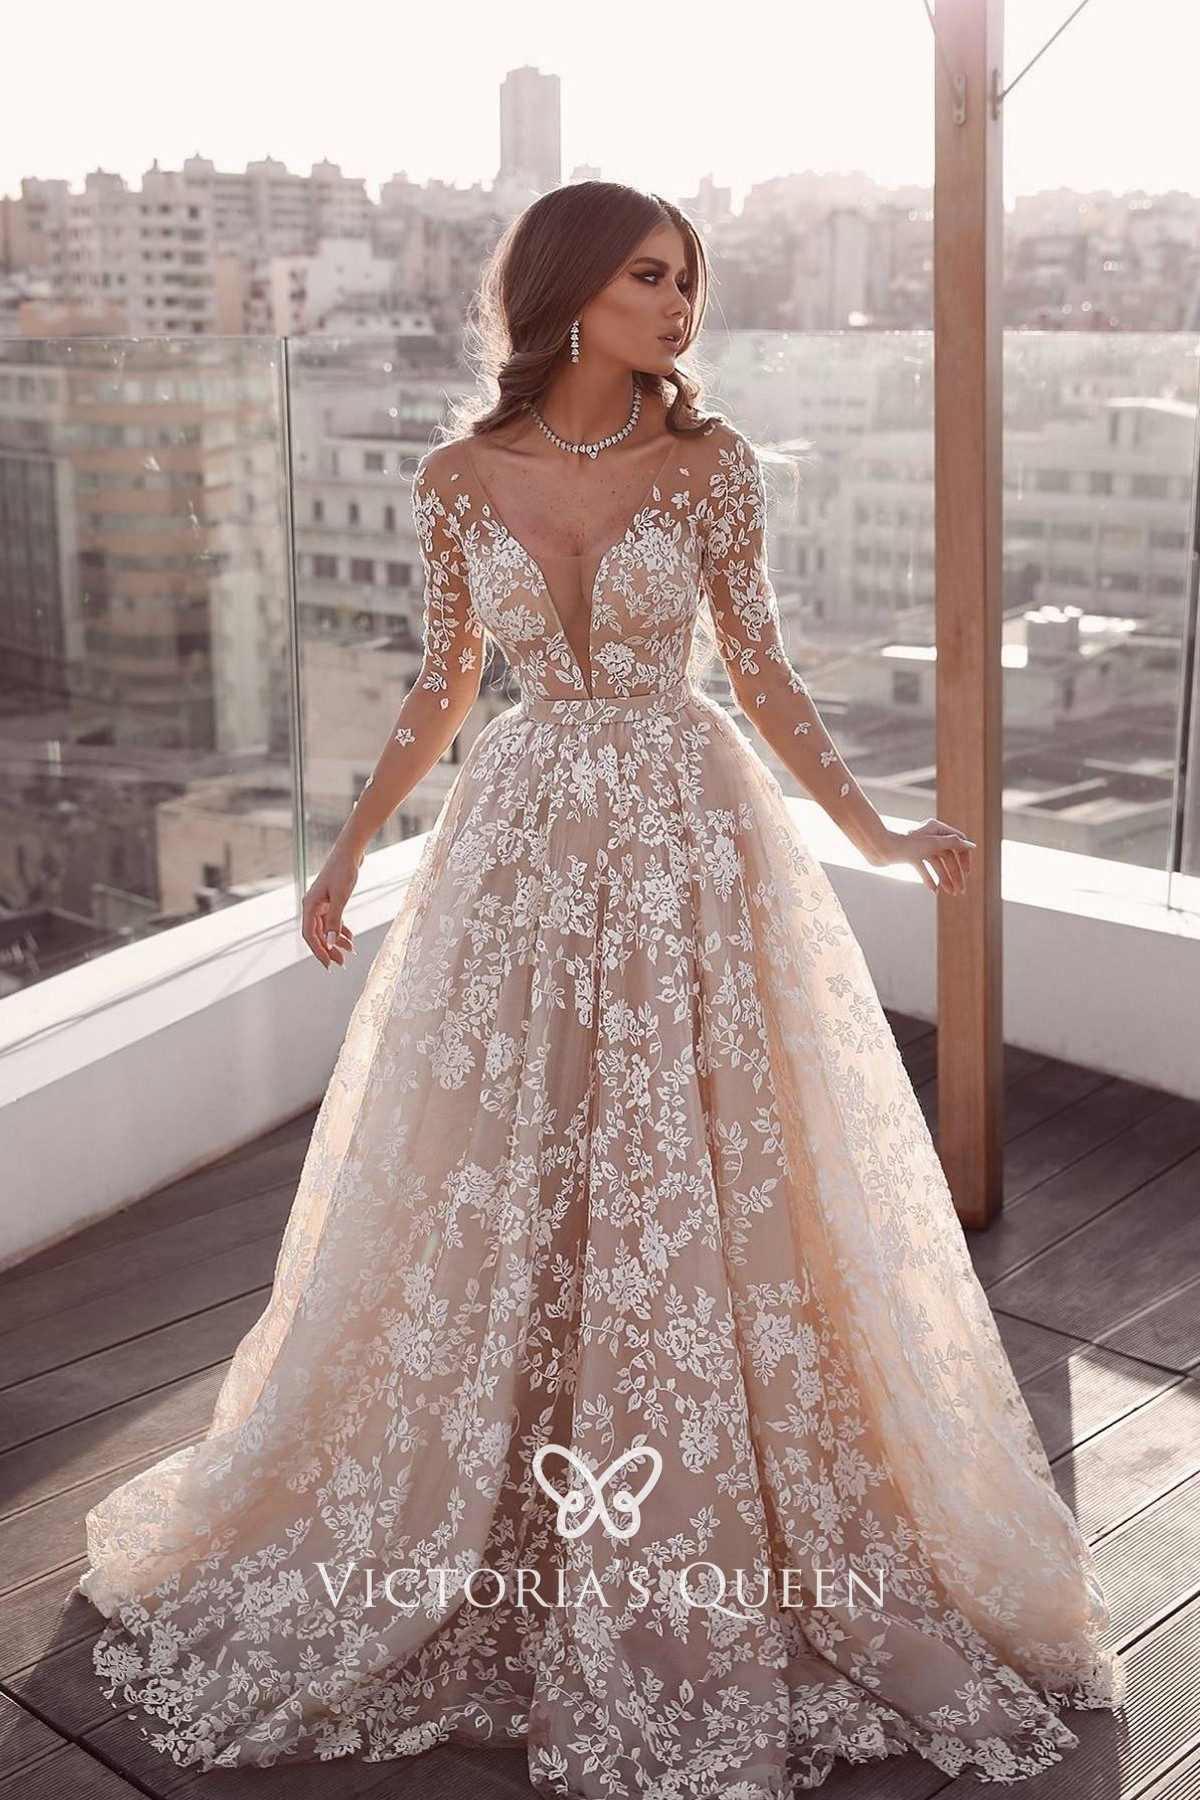 Nude Tulle Lace Long Sleeve Boho A Line Wedding Gown Vq